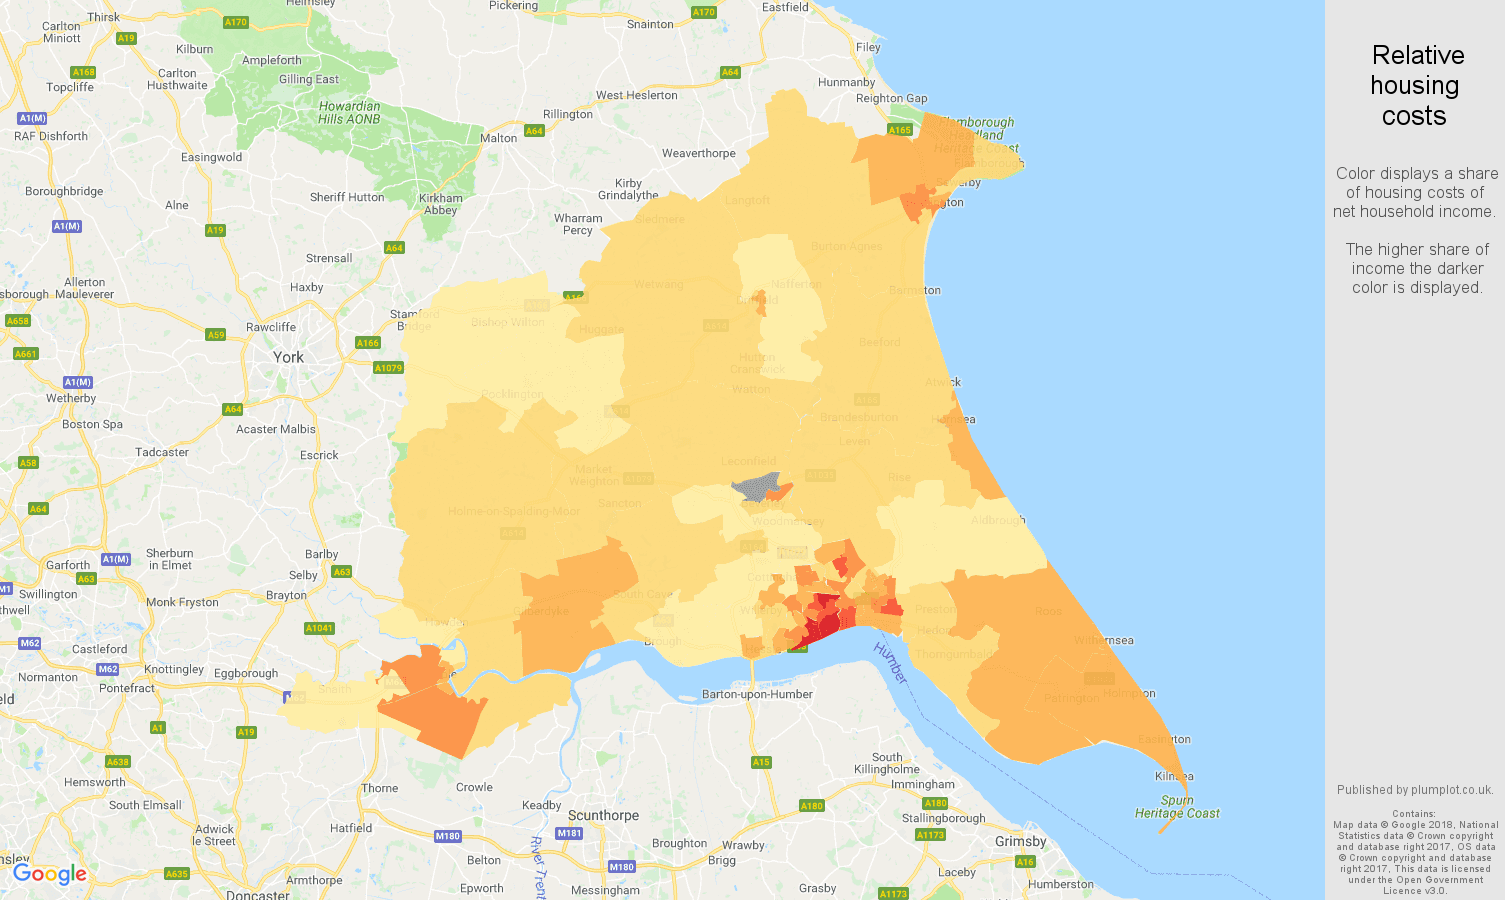 East Riding of Yorkshire relative housing costs map